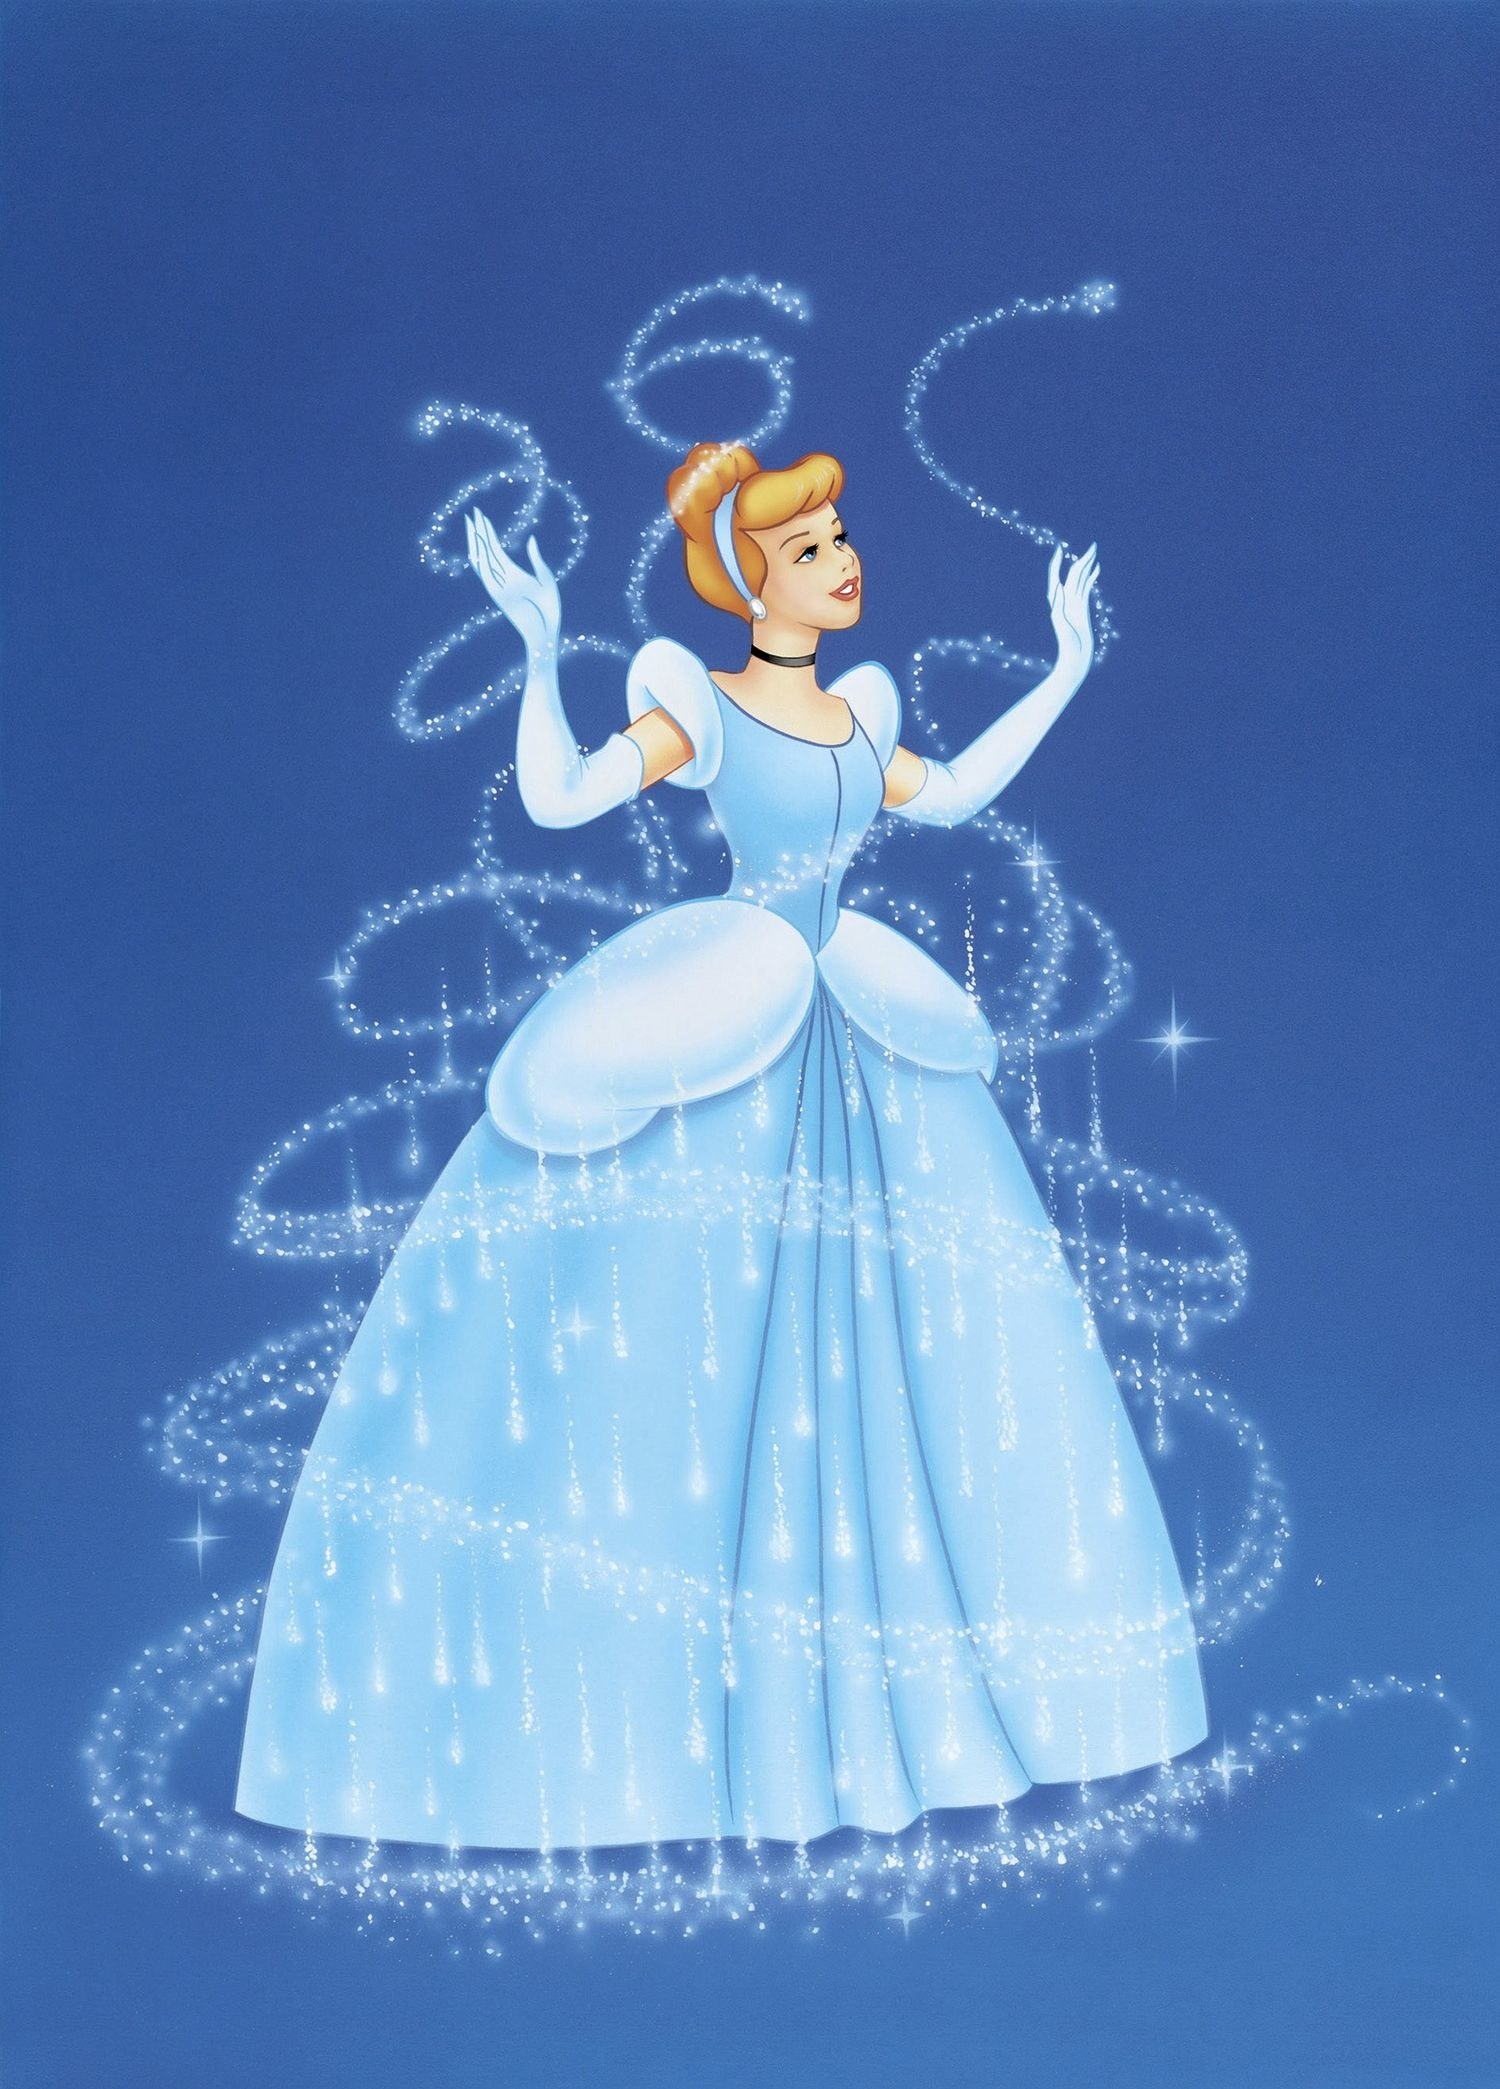 HQ Cinderella Wallpapers | File 400.89Kb